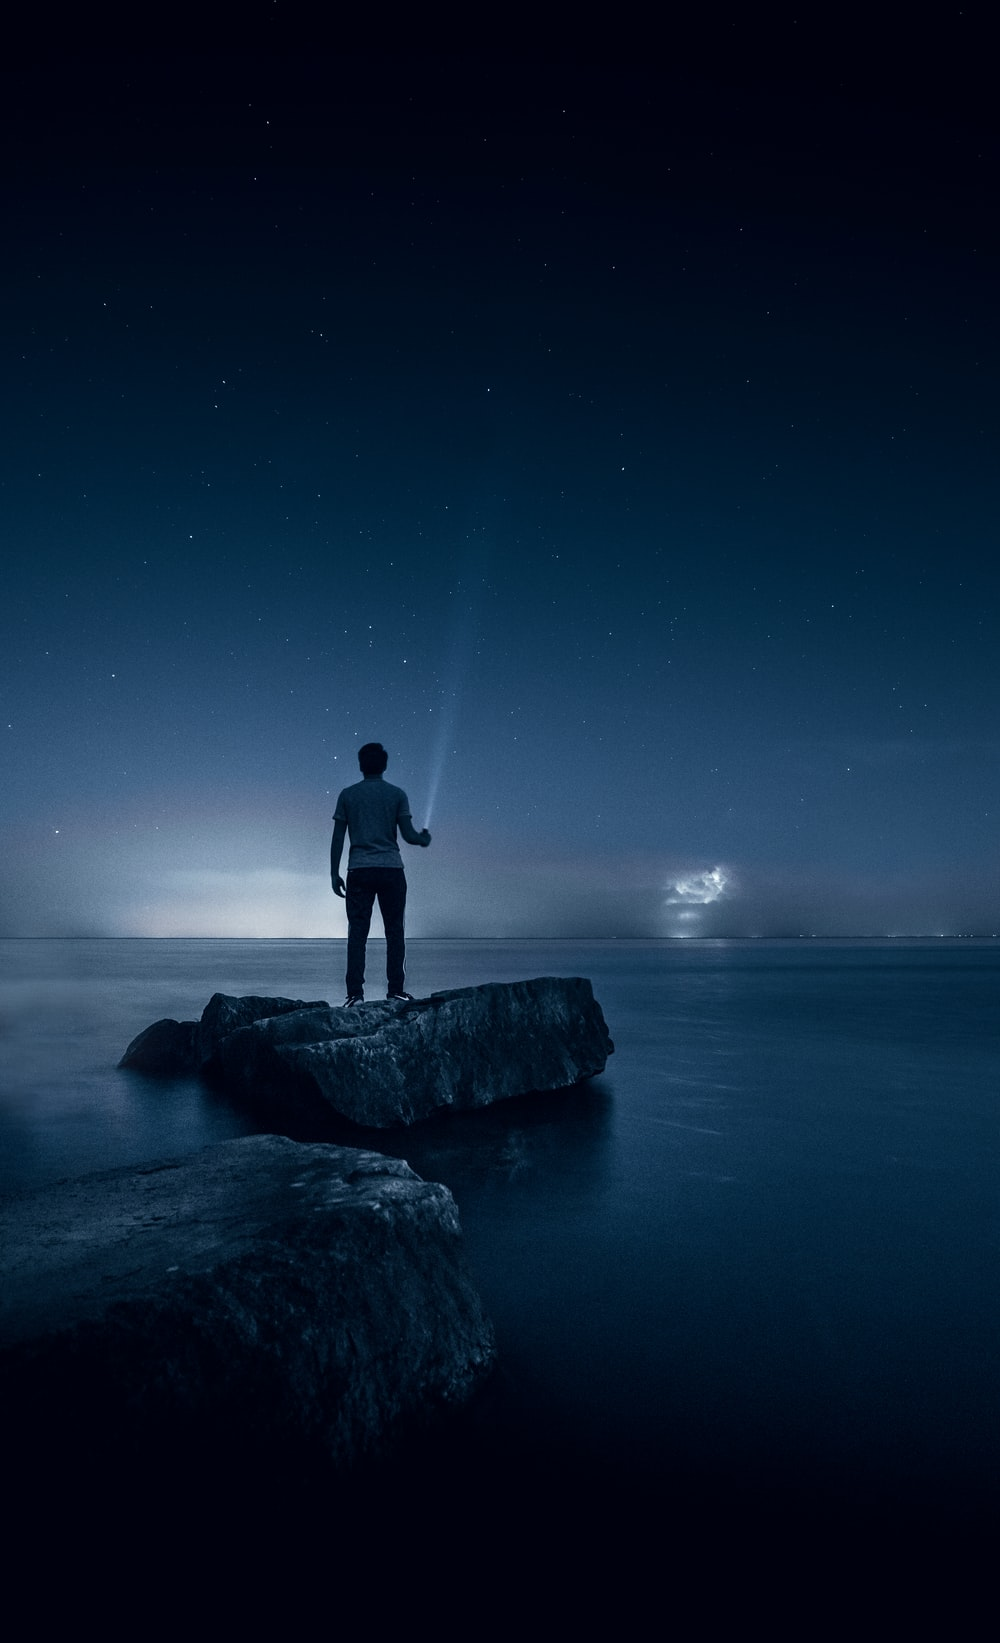 man holding flashlight standing on rock